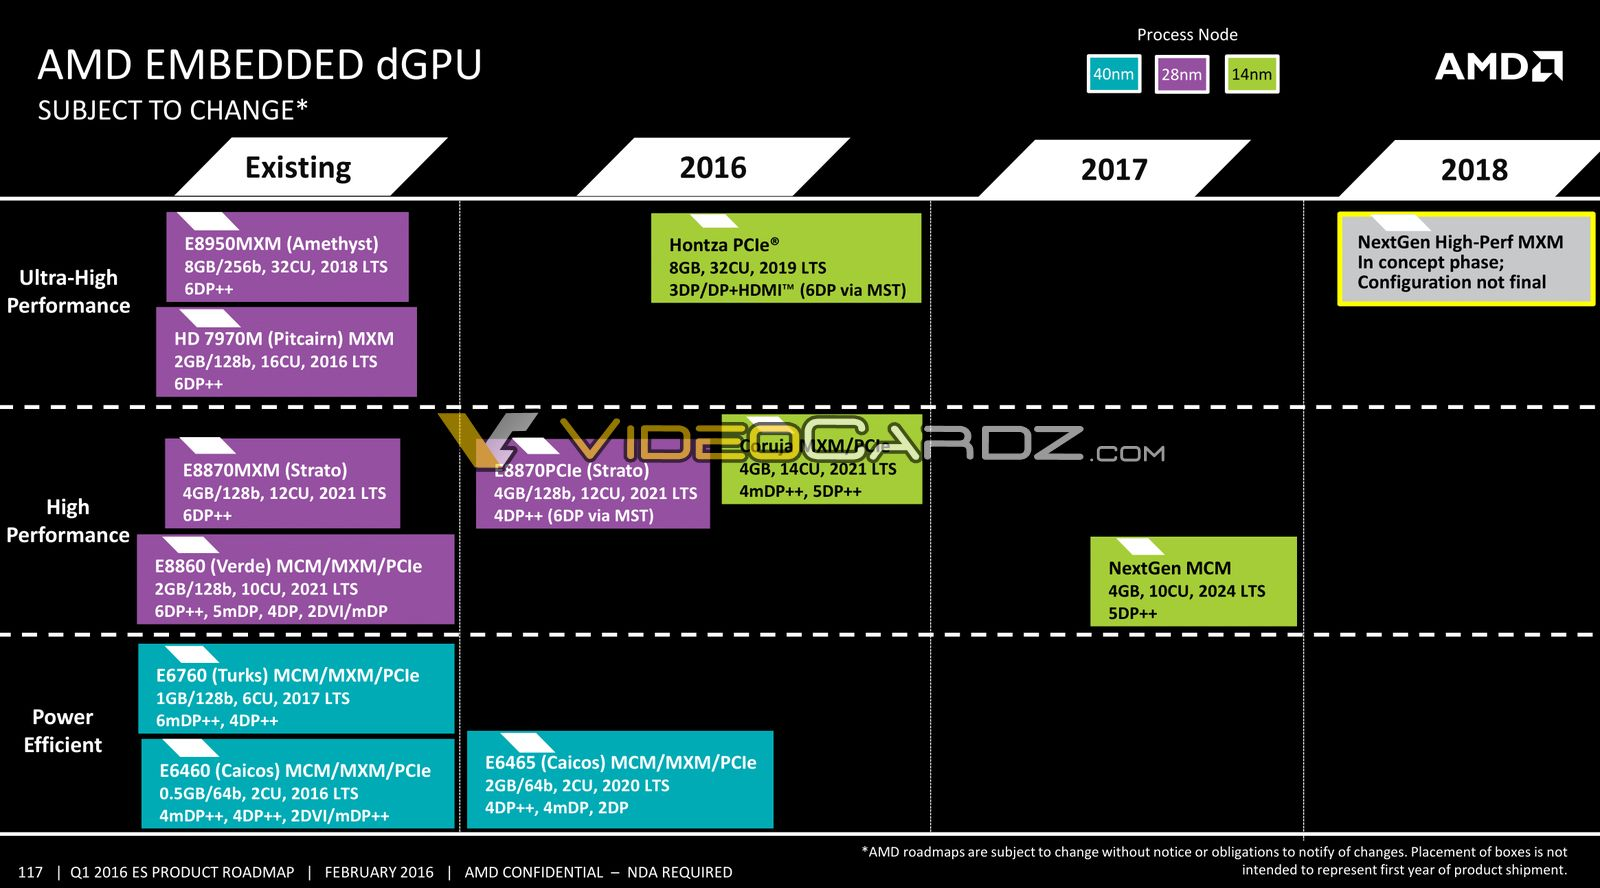 AMD Zen Based Enterprise CPU / APU Roadmap Leaked: 14nm Naples With 32 Cores in 2017, 7nm Starship With 48 Cores  AMD-Embedded-dGPU-Roadmap-Leak-1